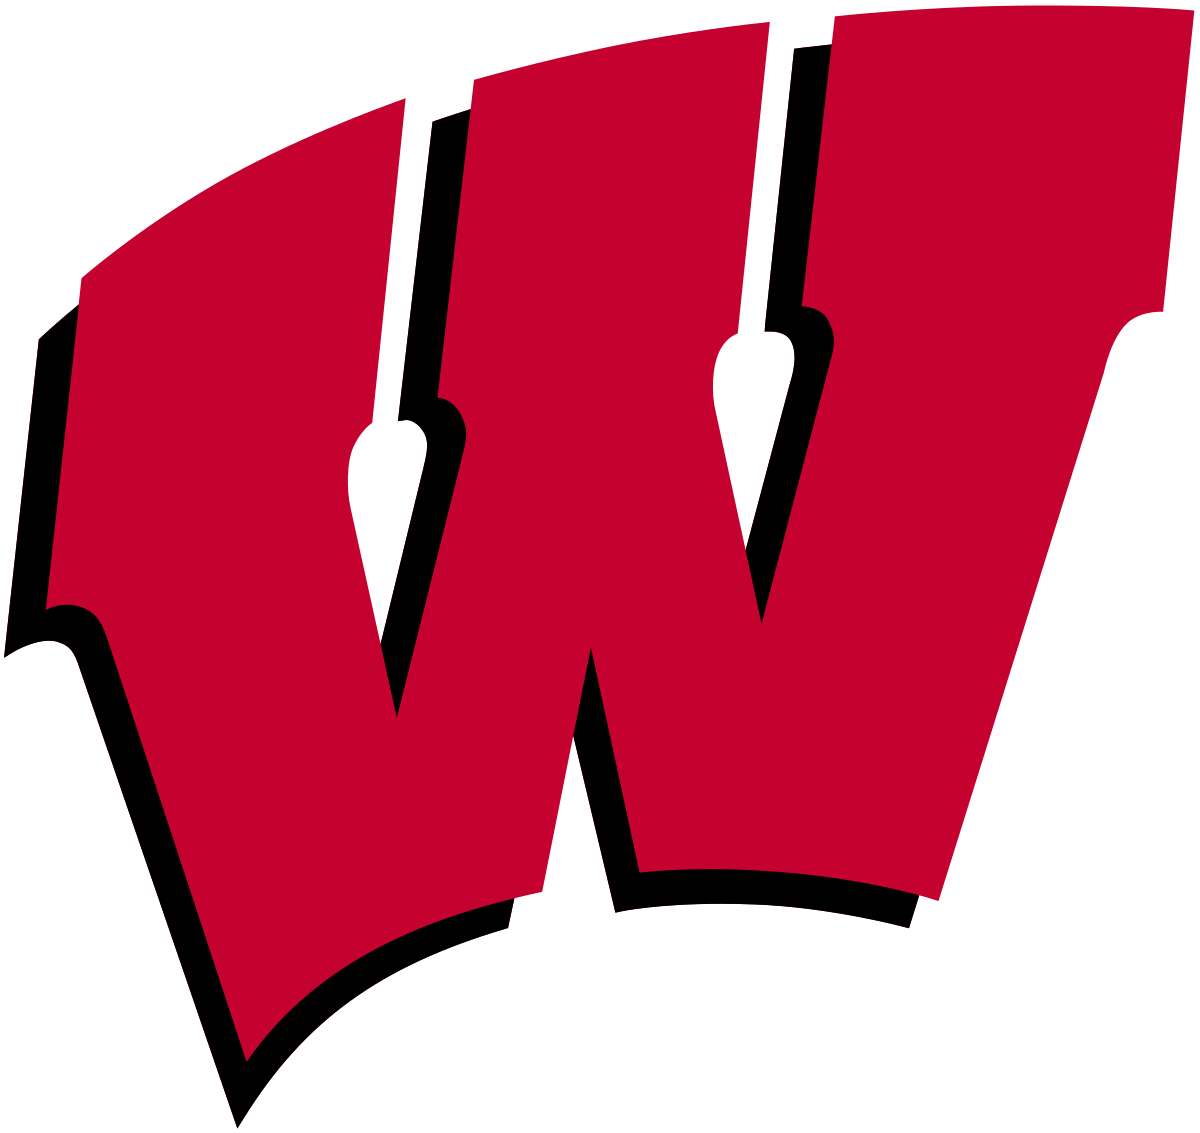 Basketball clipart in rows vector library download Wisconsin Badgers men's basketball - Wikipedia vector library download